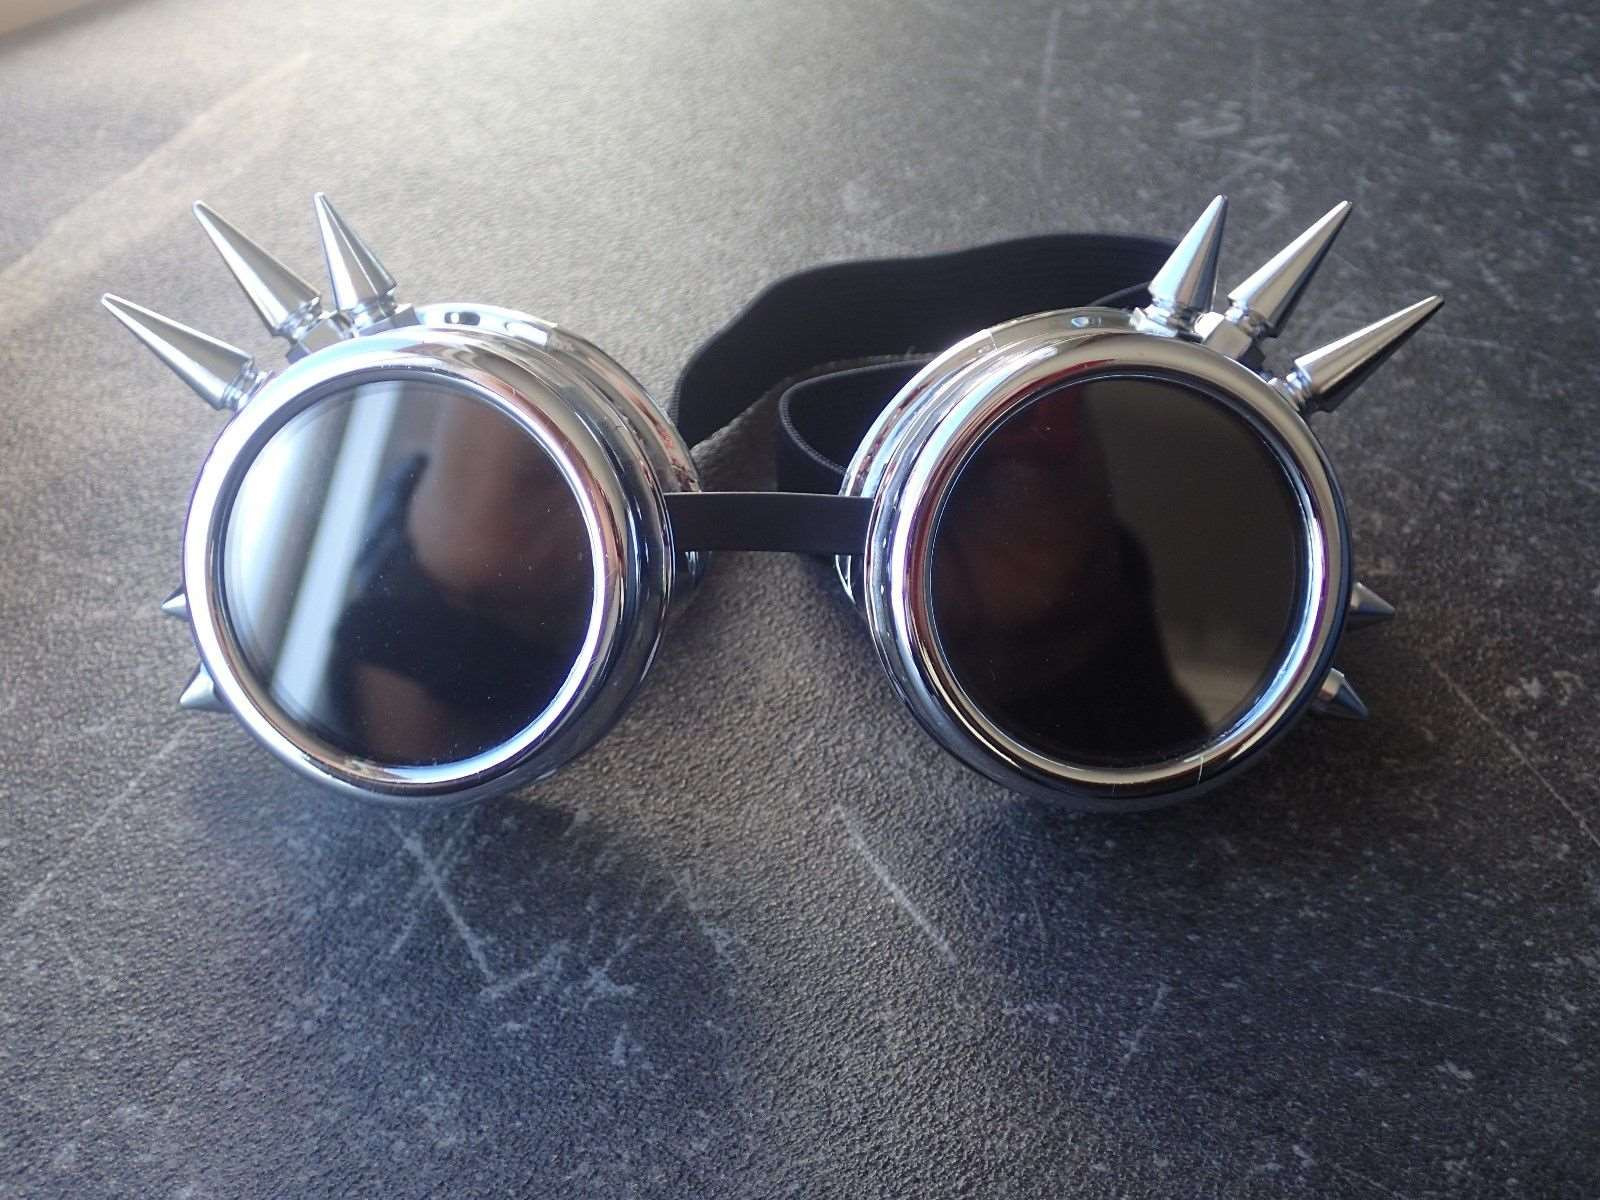 Safurance Fashion Silver Steampunk Goggles Spikey Burning Man Costume Cosplay Gothic Punk  Safety Goggles